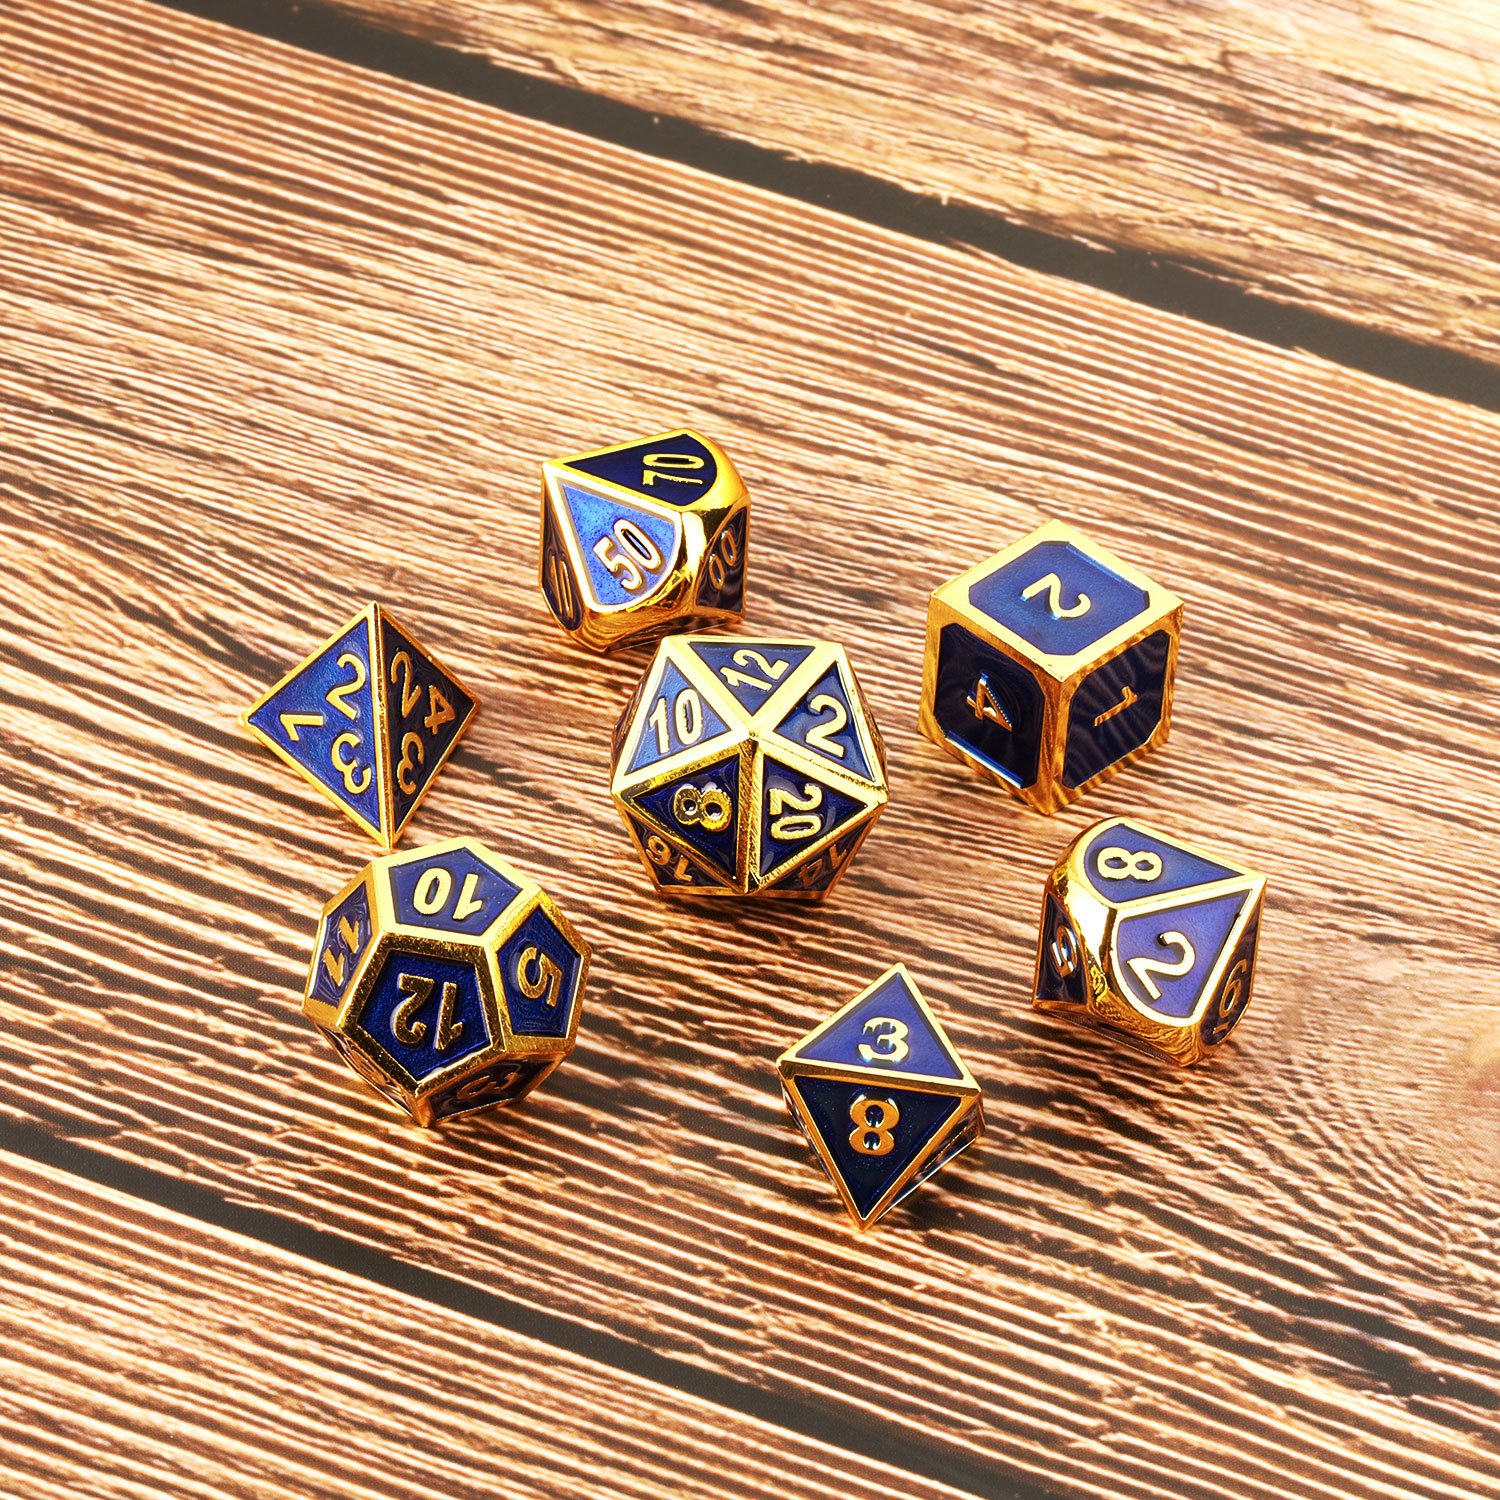 Golden Cerulean Hestya 7 Pieces Metal Dices Set DND Game Polyhedral Solid Metal D/&D Dice Set with Storage Bag and Zinc Alloy with Enamel for Role Playing Game Dungeons and Dragons Math Teaching